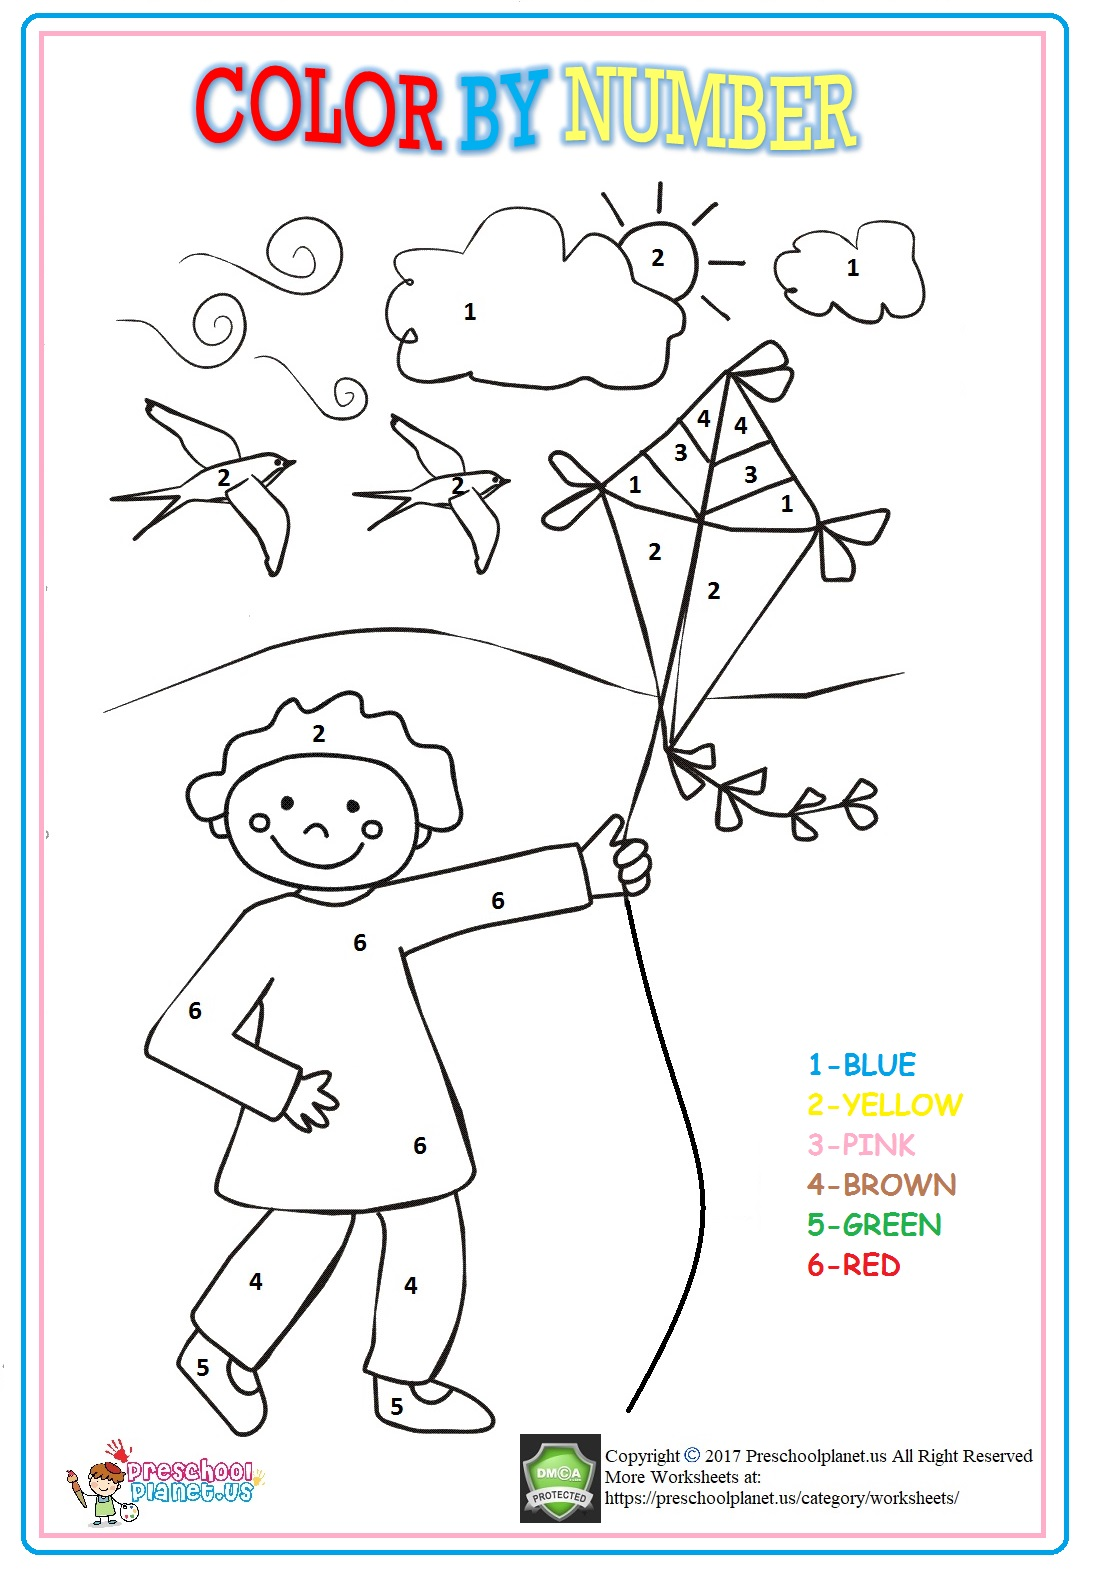 Fireman Worksheet For Kids Preschoolplanet